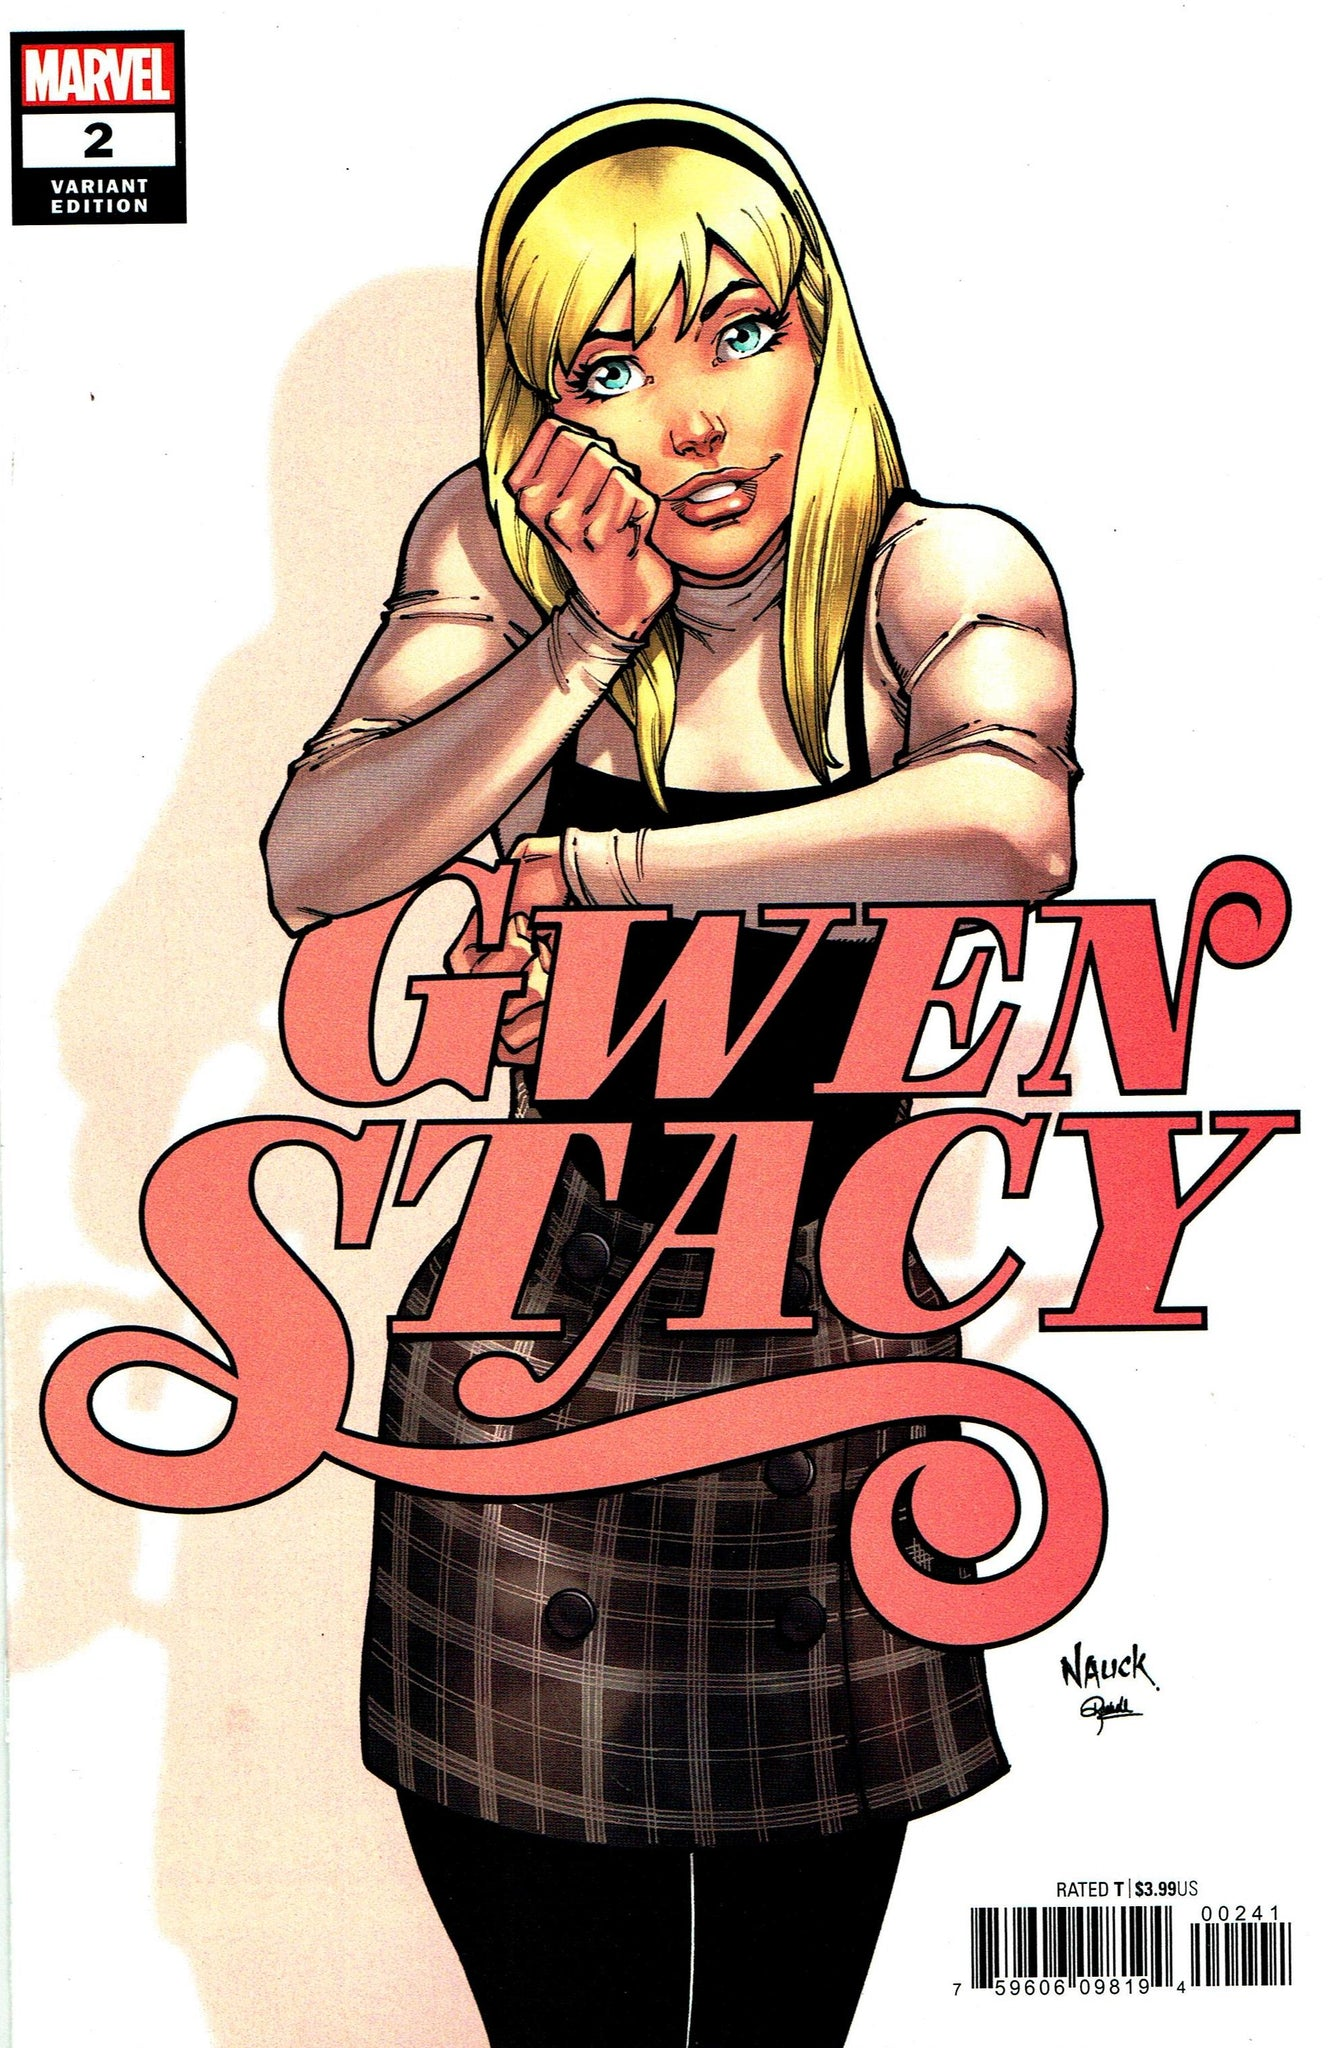 Gwen Stacy (2020) #2 (of 5) Todd Nauck Cover